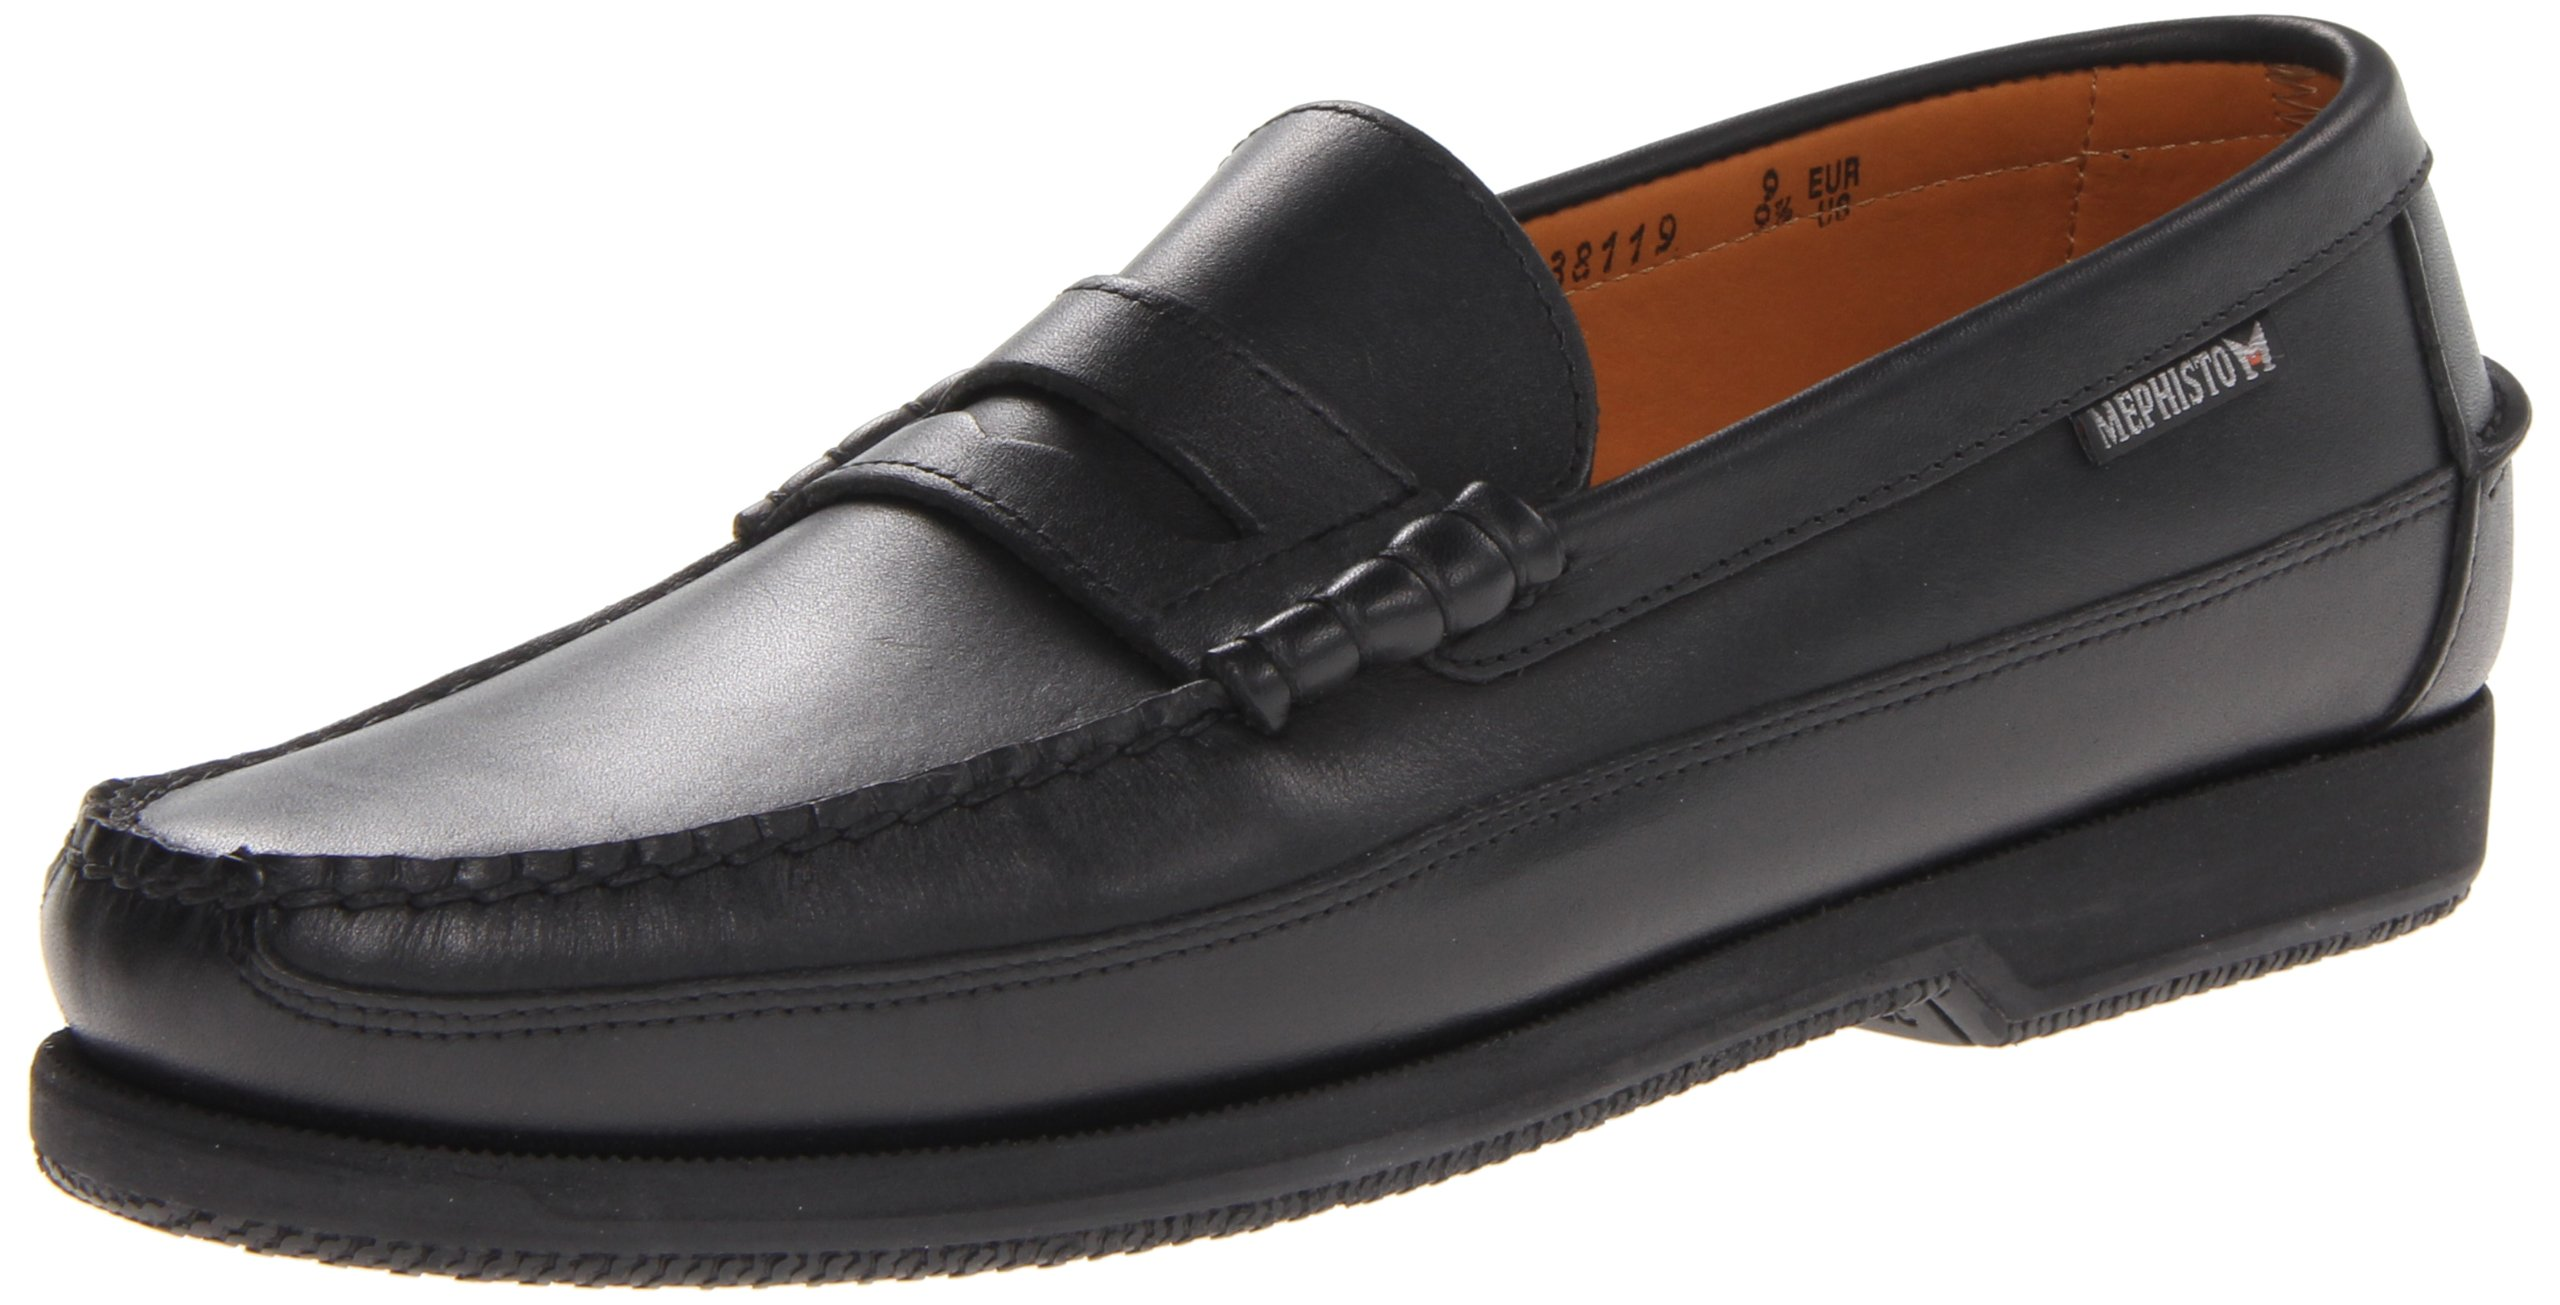 Mephisto Penny Loafer Black Leather